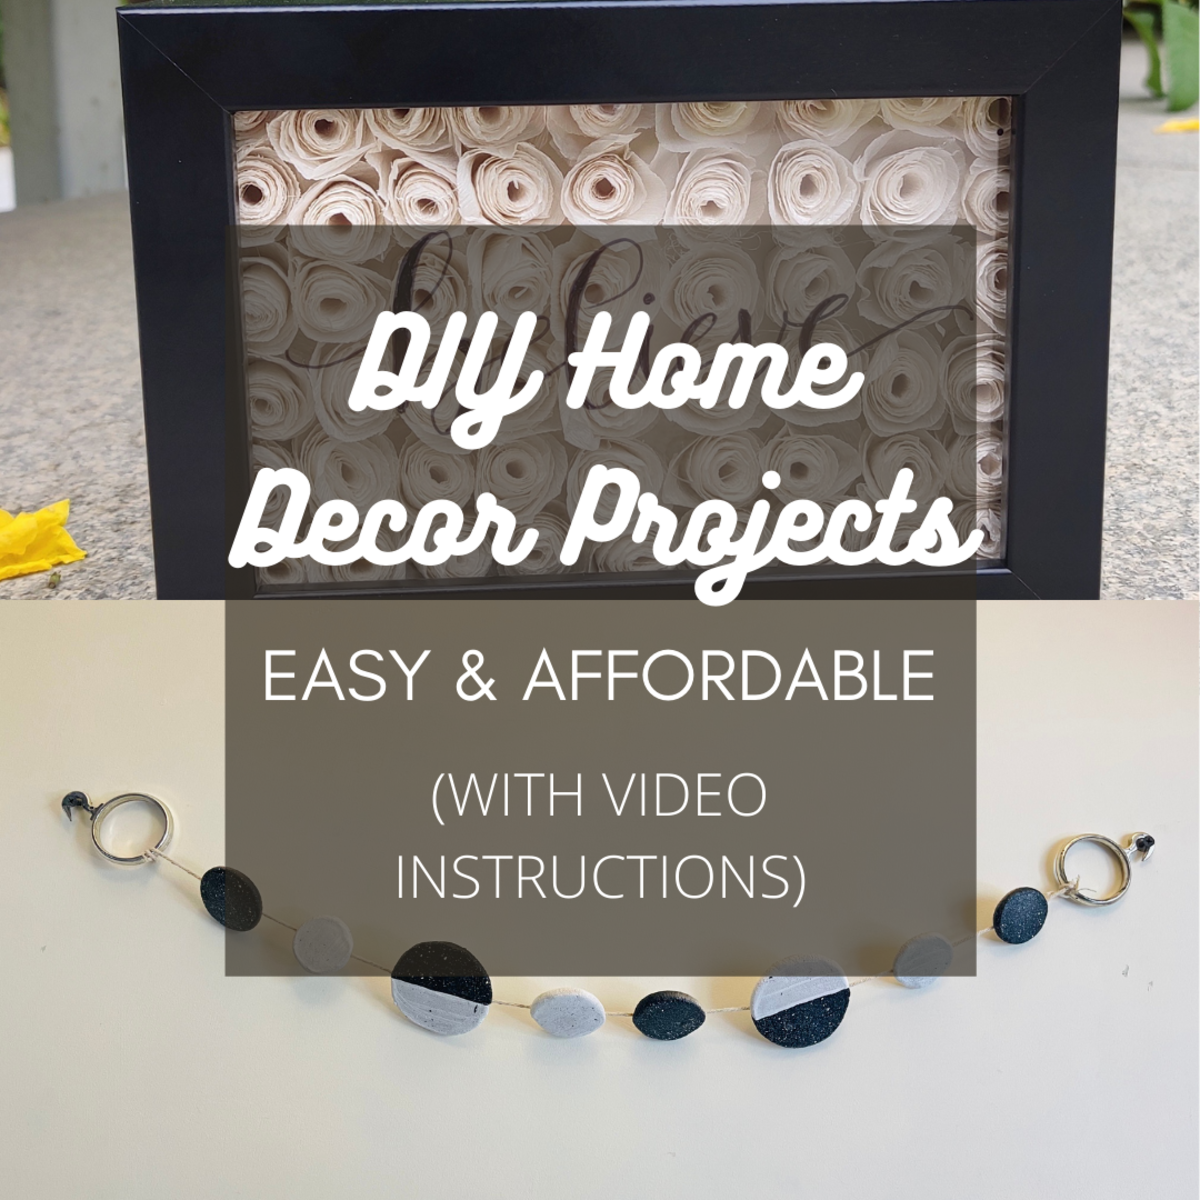 budget-friendly-diy-home-decor-projects-that-you-must-try-video-instructions-inlcuded